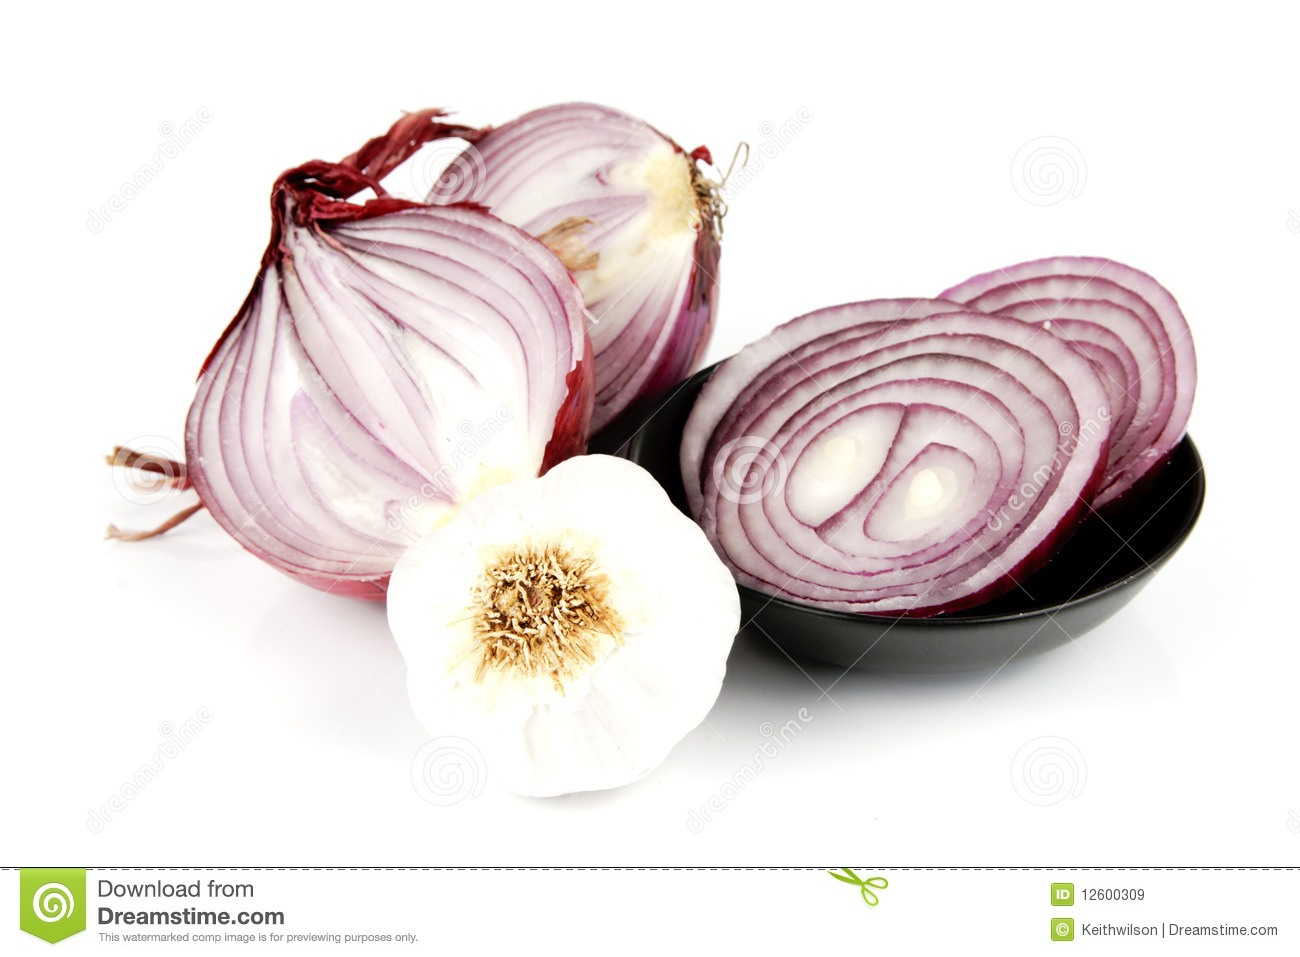 Onions and Garlic are natural antioxidents but also can be used to absorb bacteria. in cold and flu season place a full garlic in desired rooms, another great idea is to cut a large red onion in half and place it either under your bed, night stand or next to your cool air humidifier.